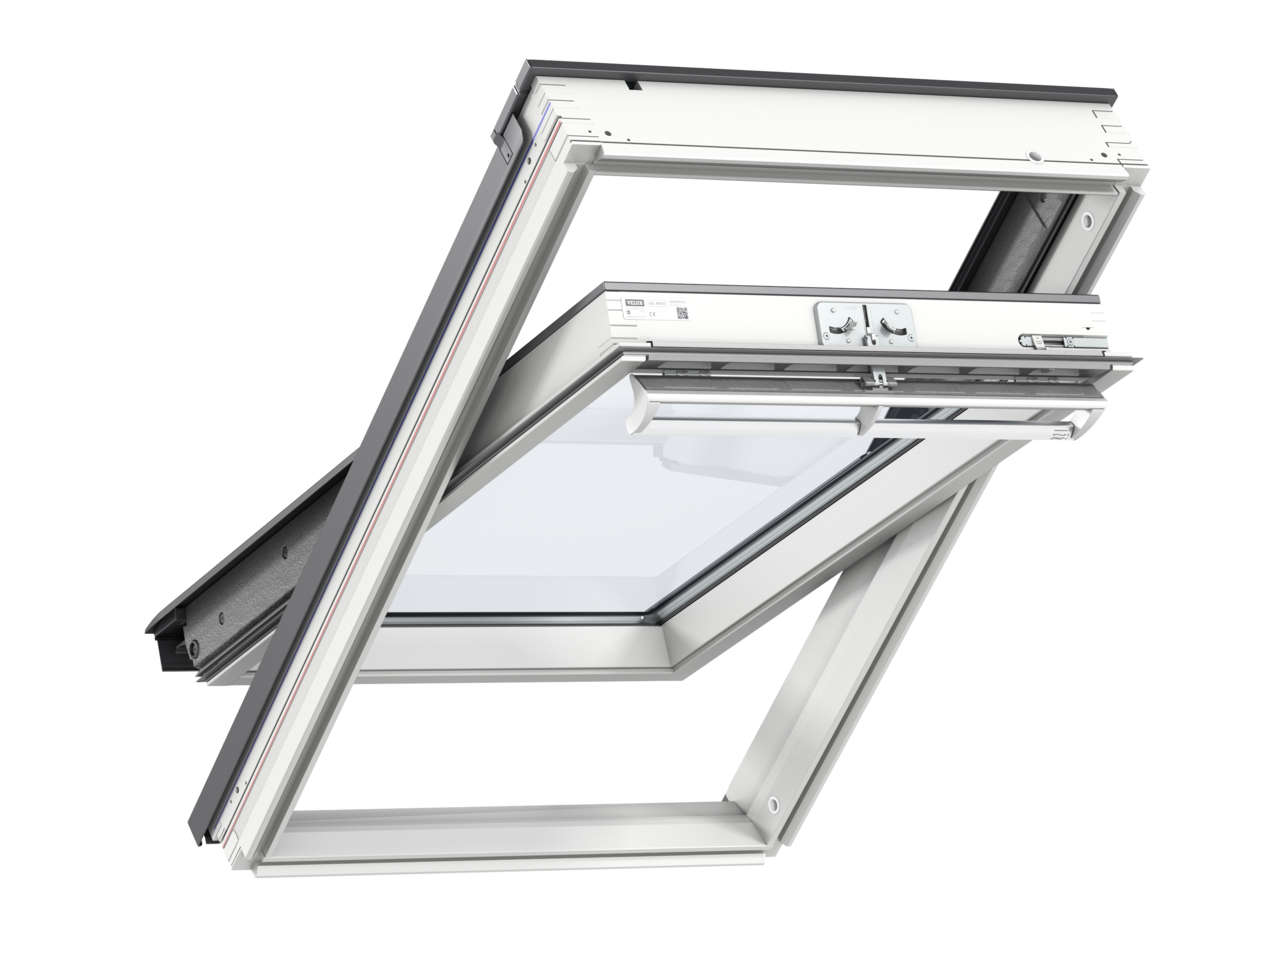 Velux GGL MK08 780 x 1400mm Centre Pivot Standard 70Pane Roof Window - White Painted